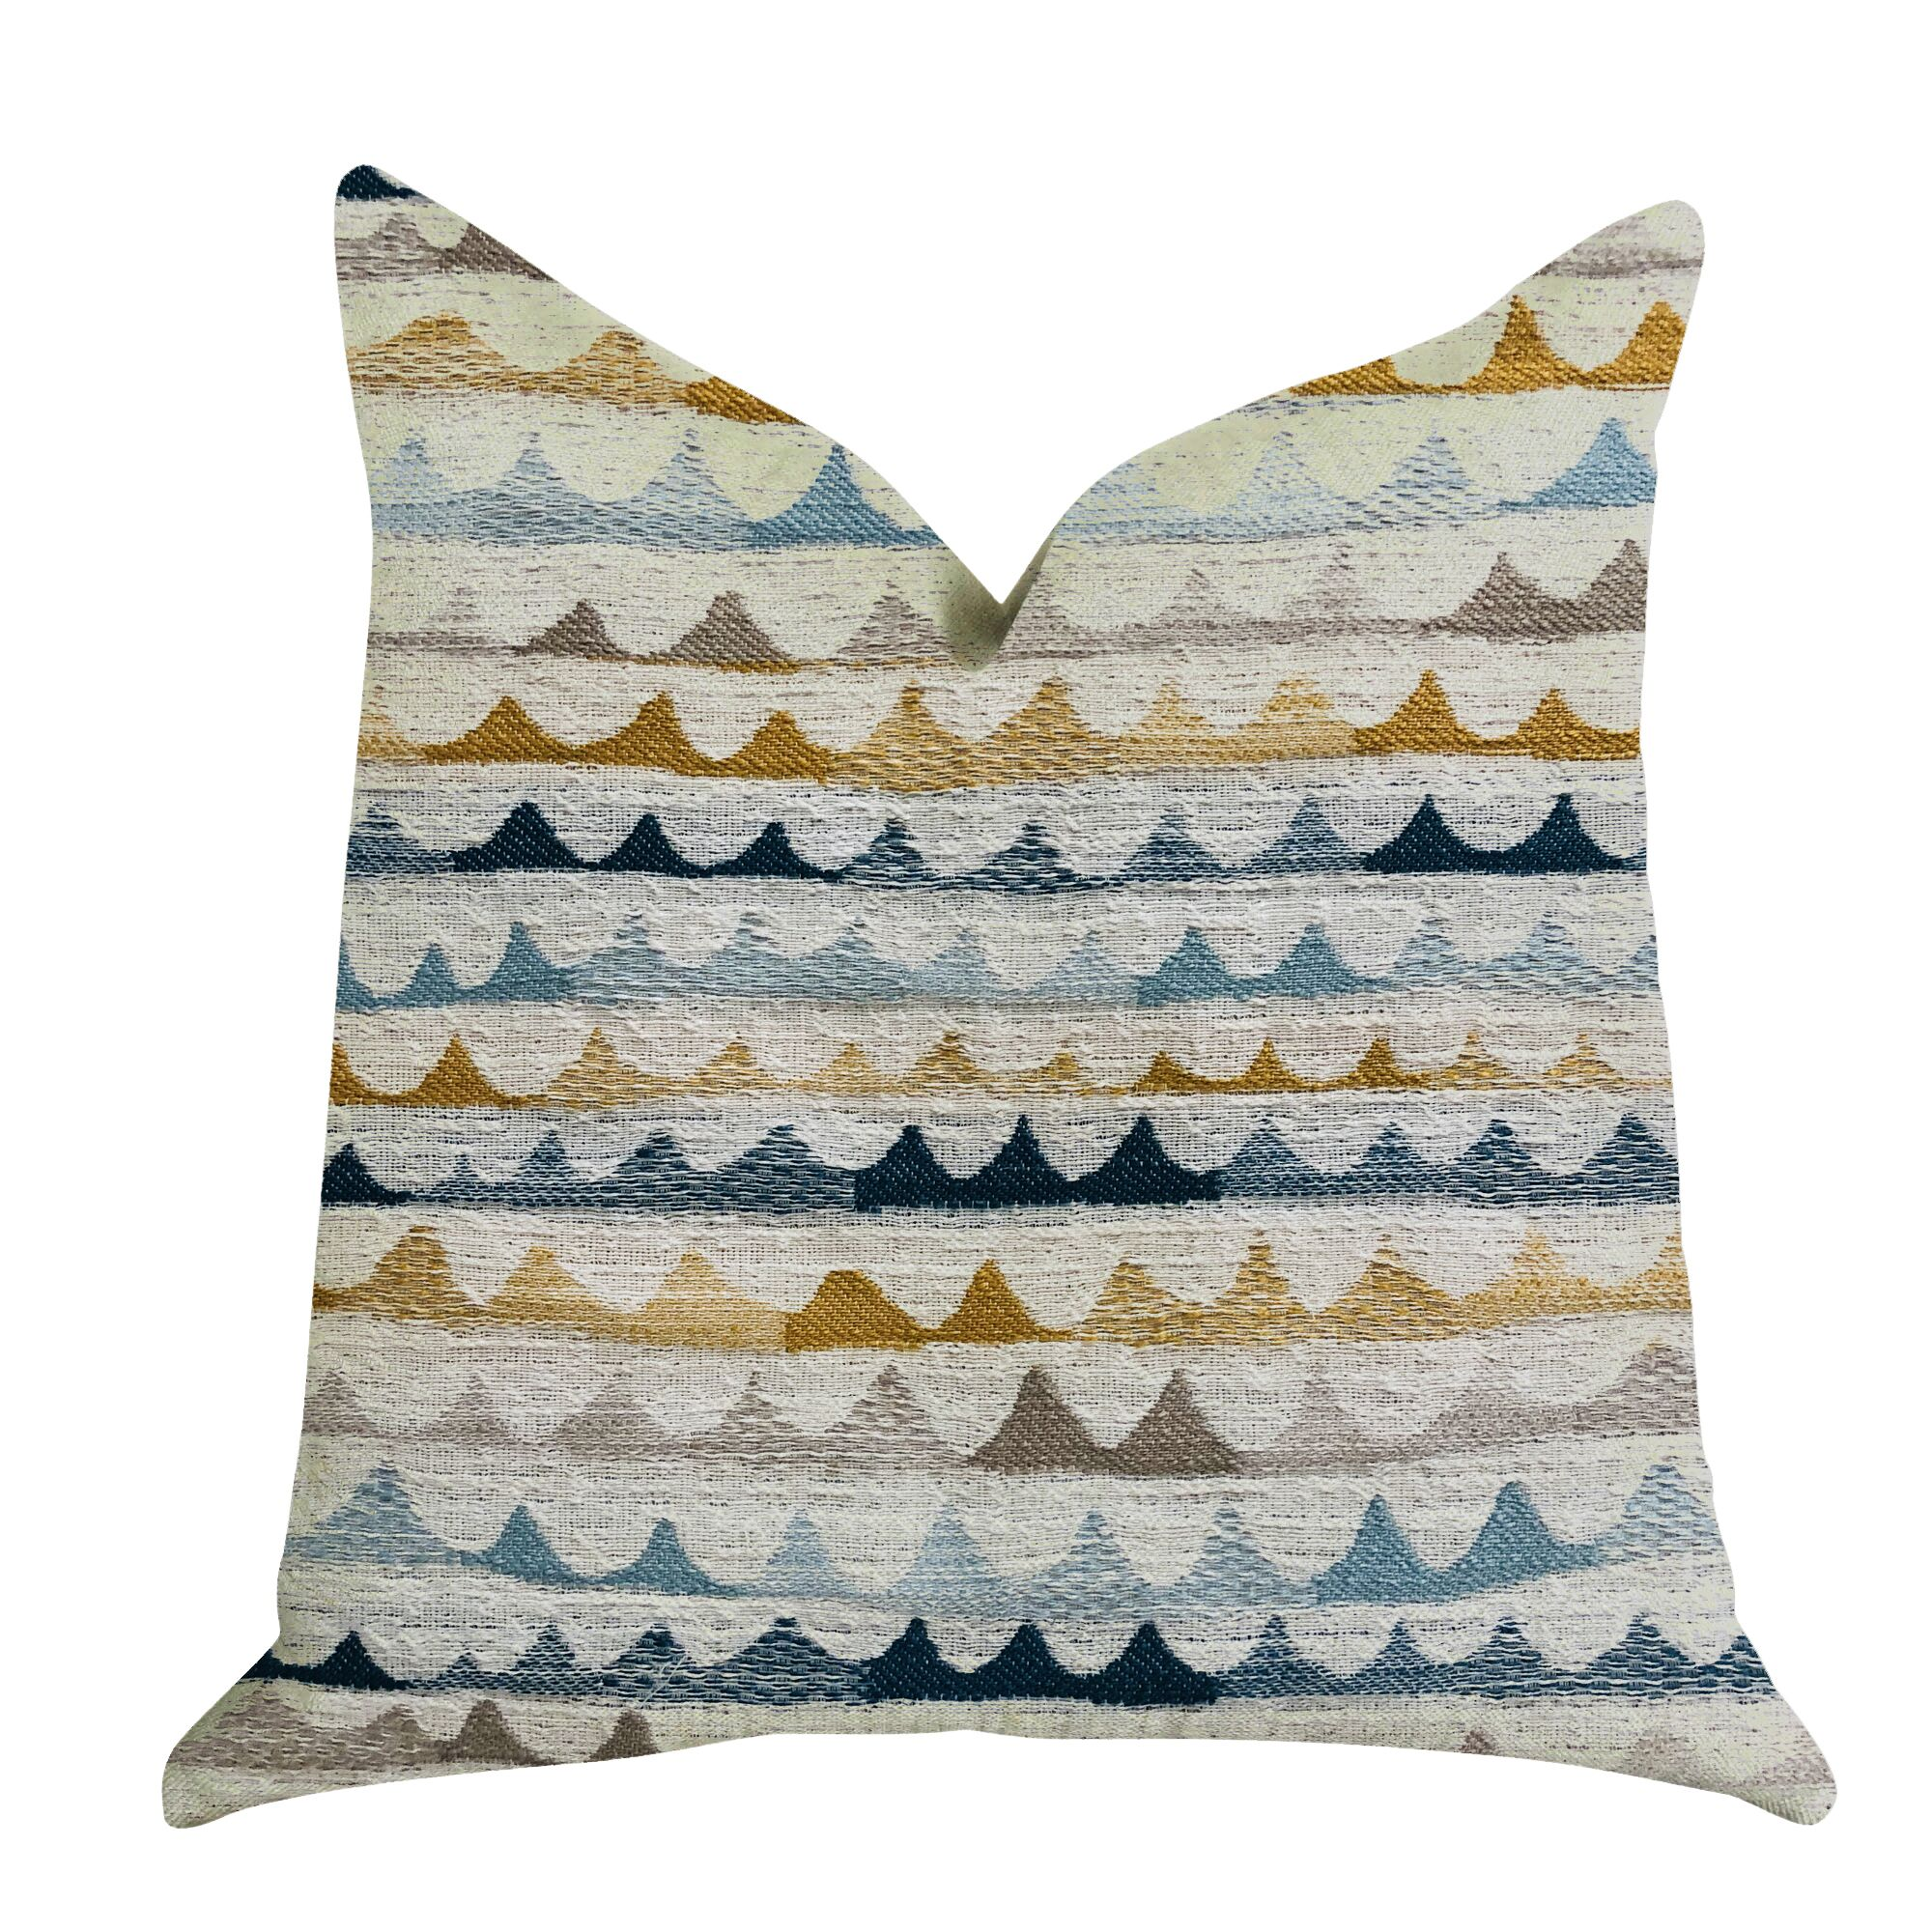 Delmar Rush Patterned Luxury Pillow Size: 20